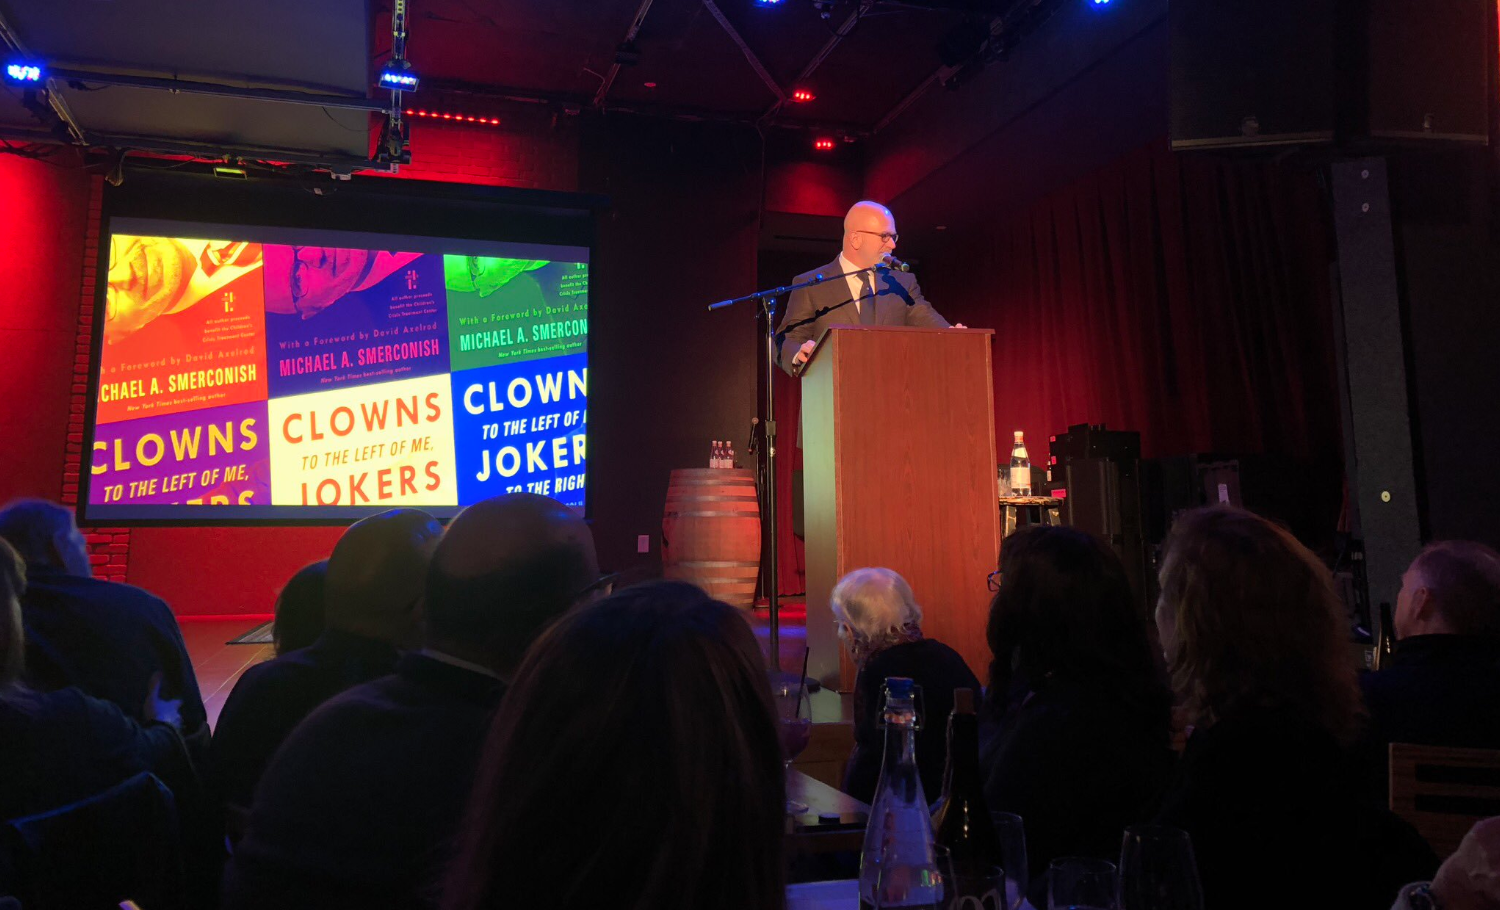 American Life in Columns tour stop at City Winery in Boston, MA (December 2018)